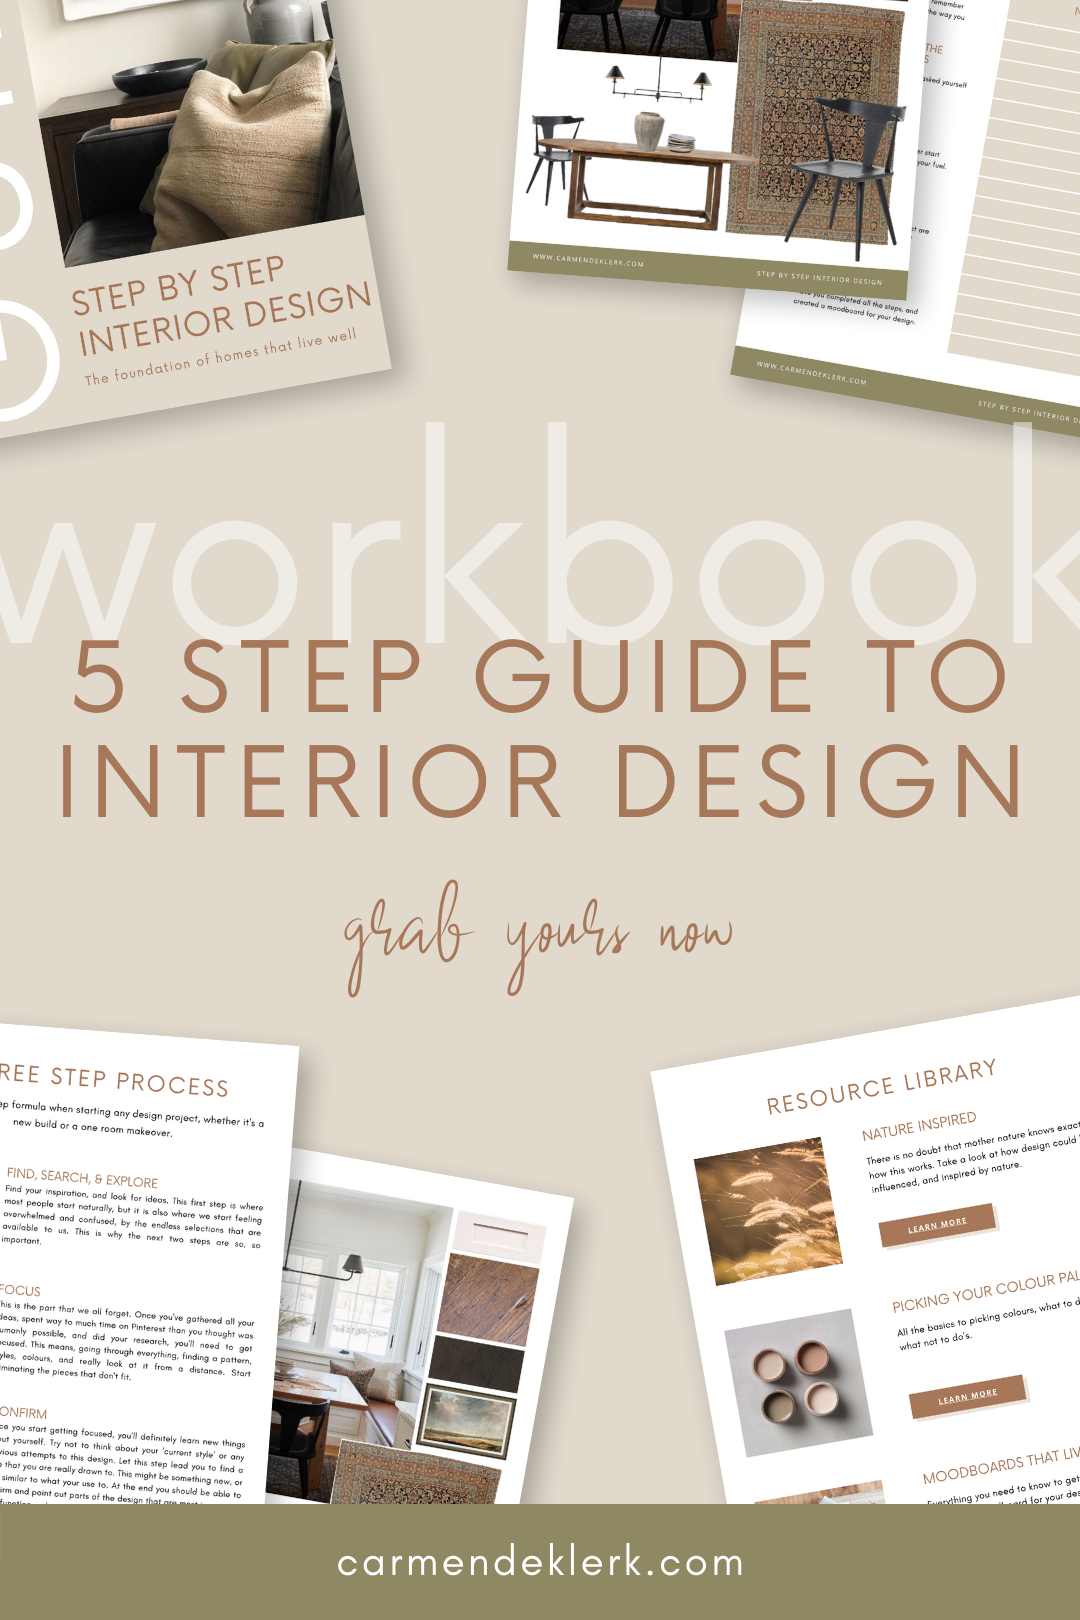 How To Get Your Interior Design Project Published